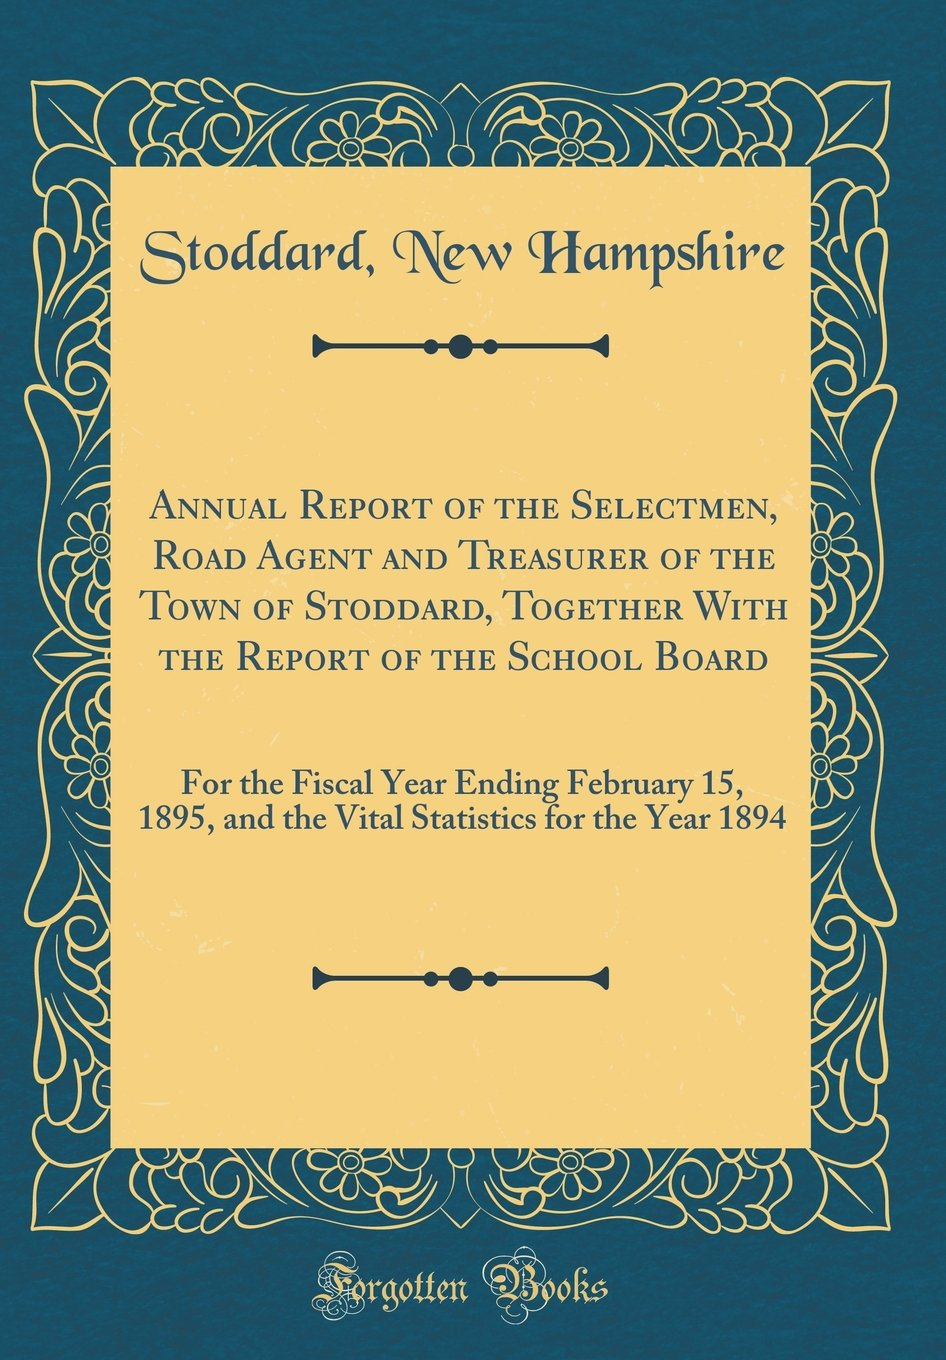 Annual Report of the Selectmen, Road Agent and Treasurer of the Town of Stoddard, Together With the Report of the School Board: For the Fiscal Year ... for the Year 1894 (Classic Reprint) pdf epub